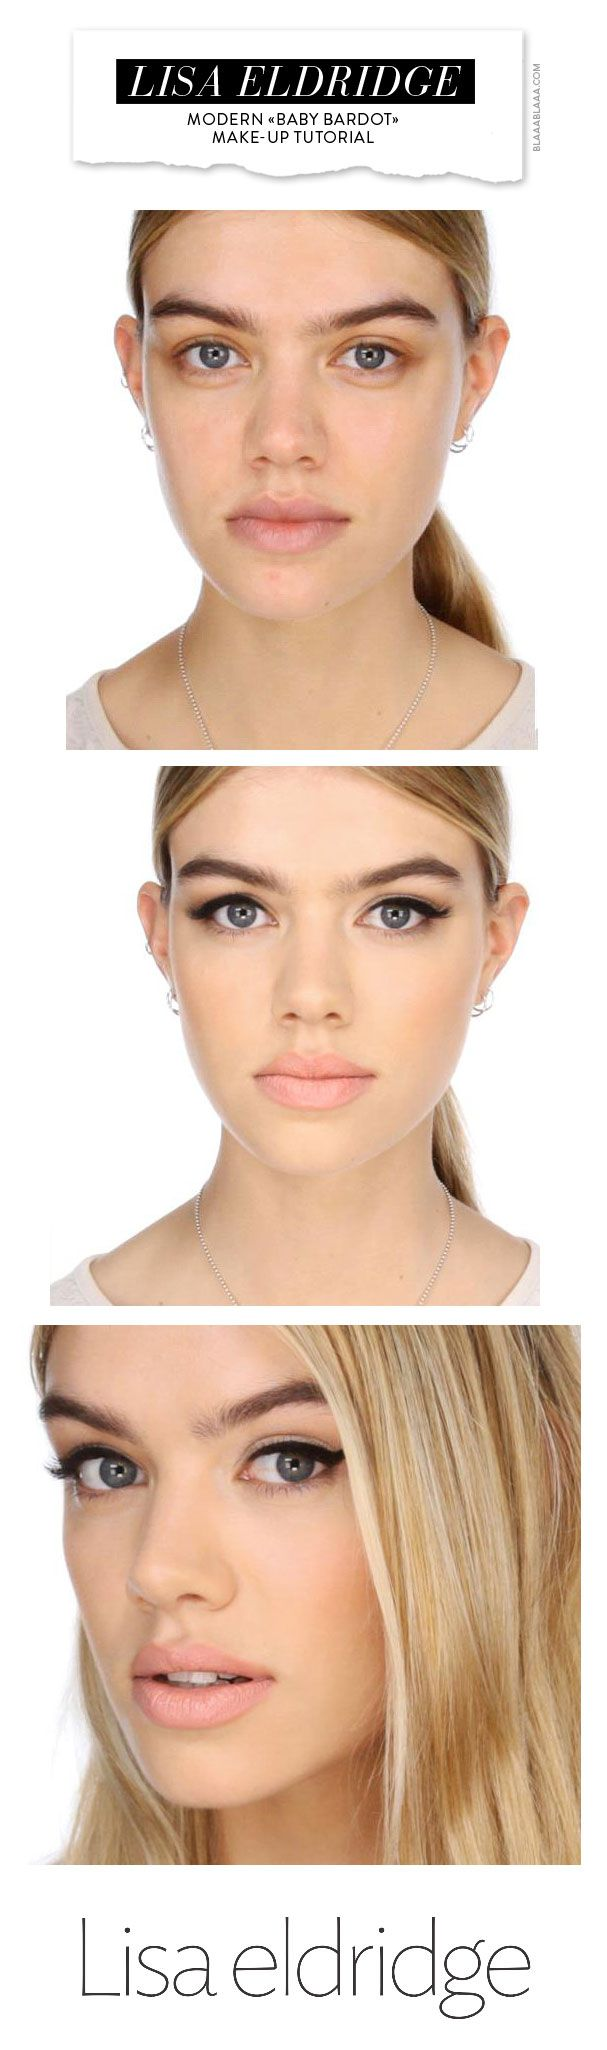 Modern «Baby Bardot» Make-up Tutorial by Lisa Eldridge; I like the way her make up turned out. Glad it's a tutorial link.